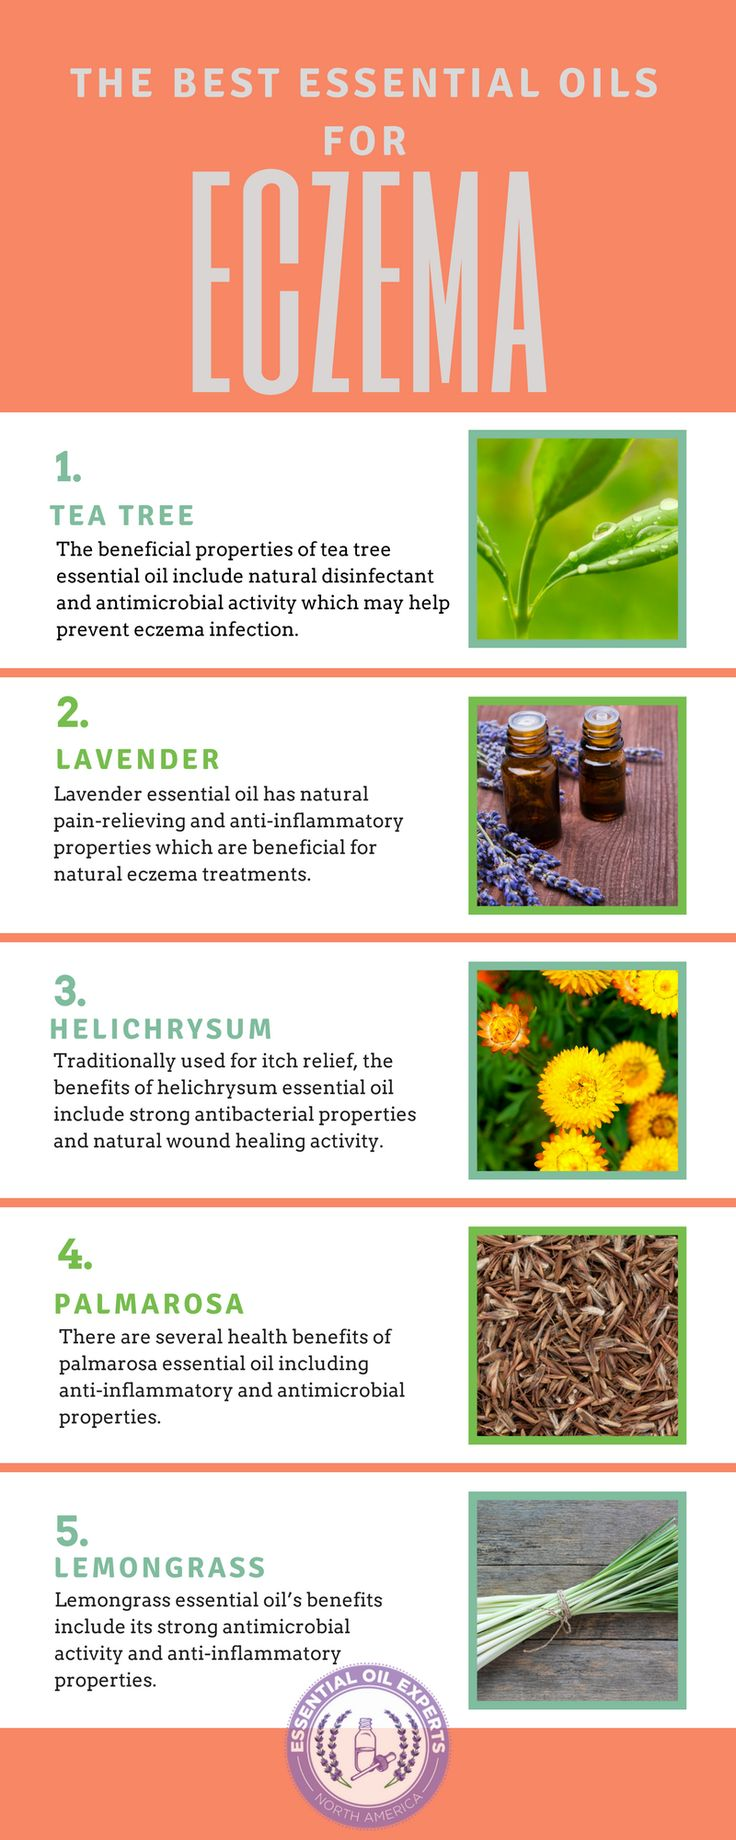 Best Essential Oils for Eczema - Treating Eczema Naturally